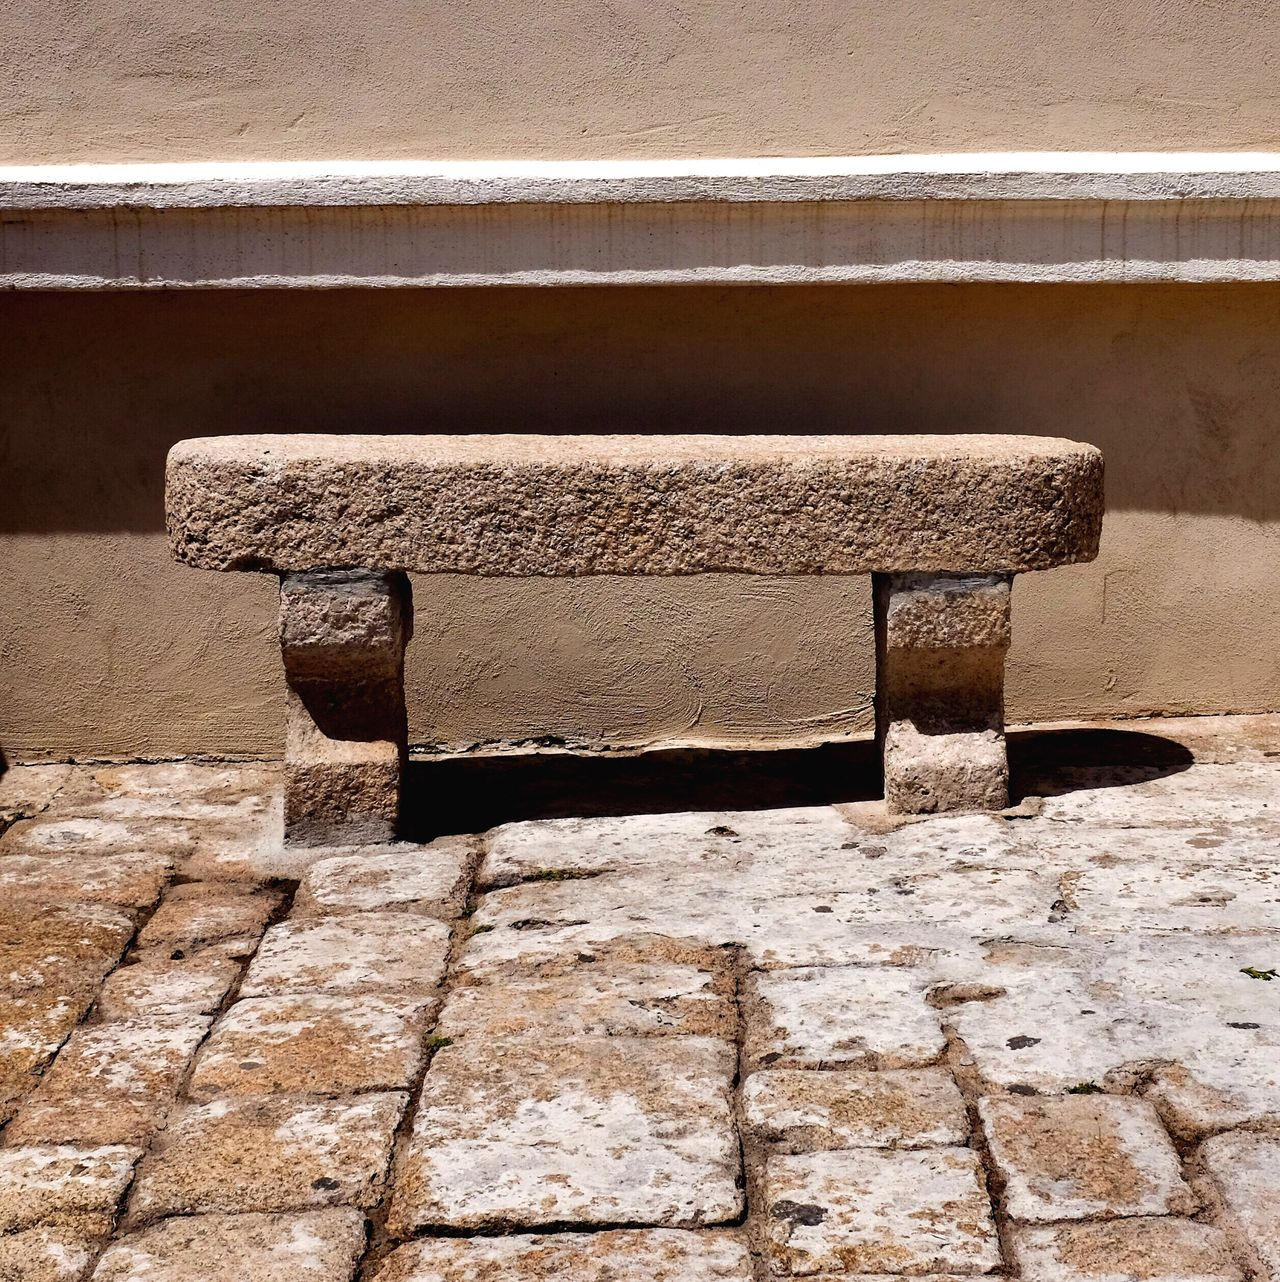 Built Structure Architecture Day No People Building Exterior Ancient Outdoors History Ancient Civilization Nature Close-up Bench